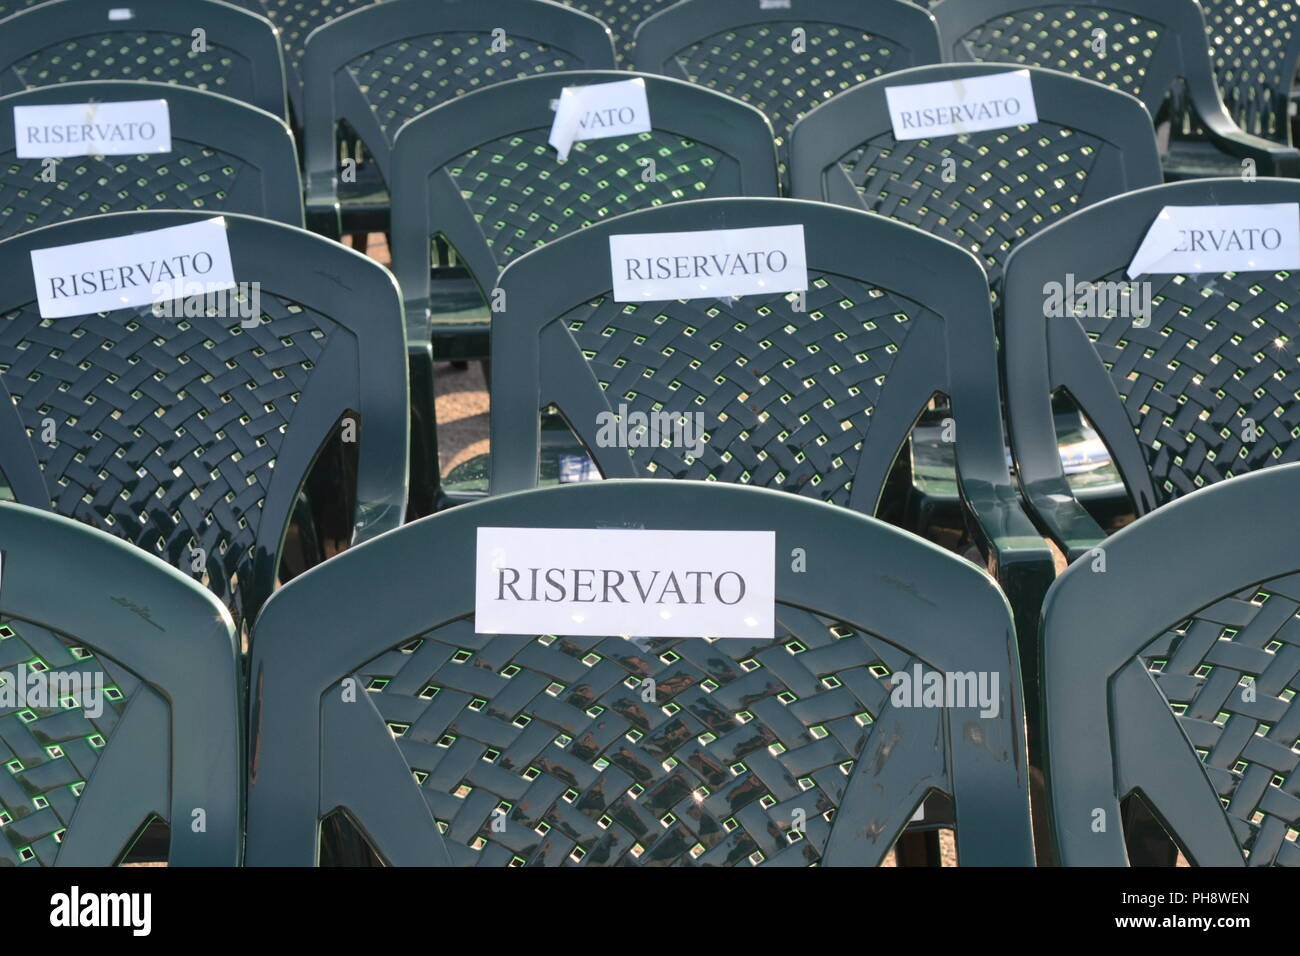 reserved seats in Italy for a public event - Stock Image